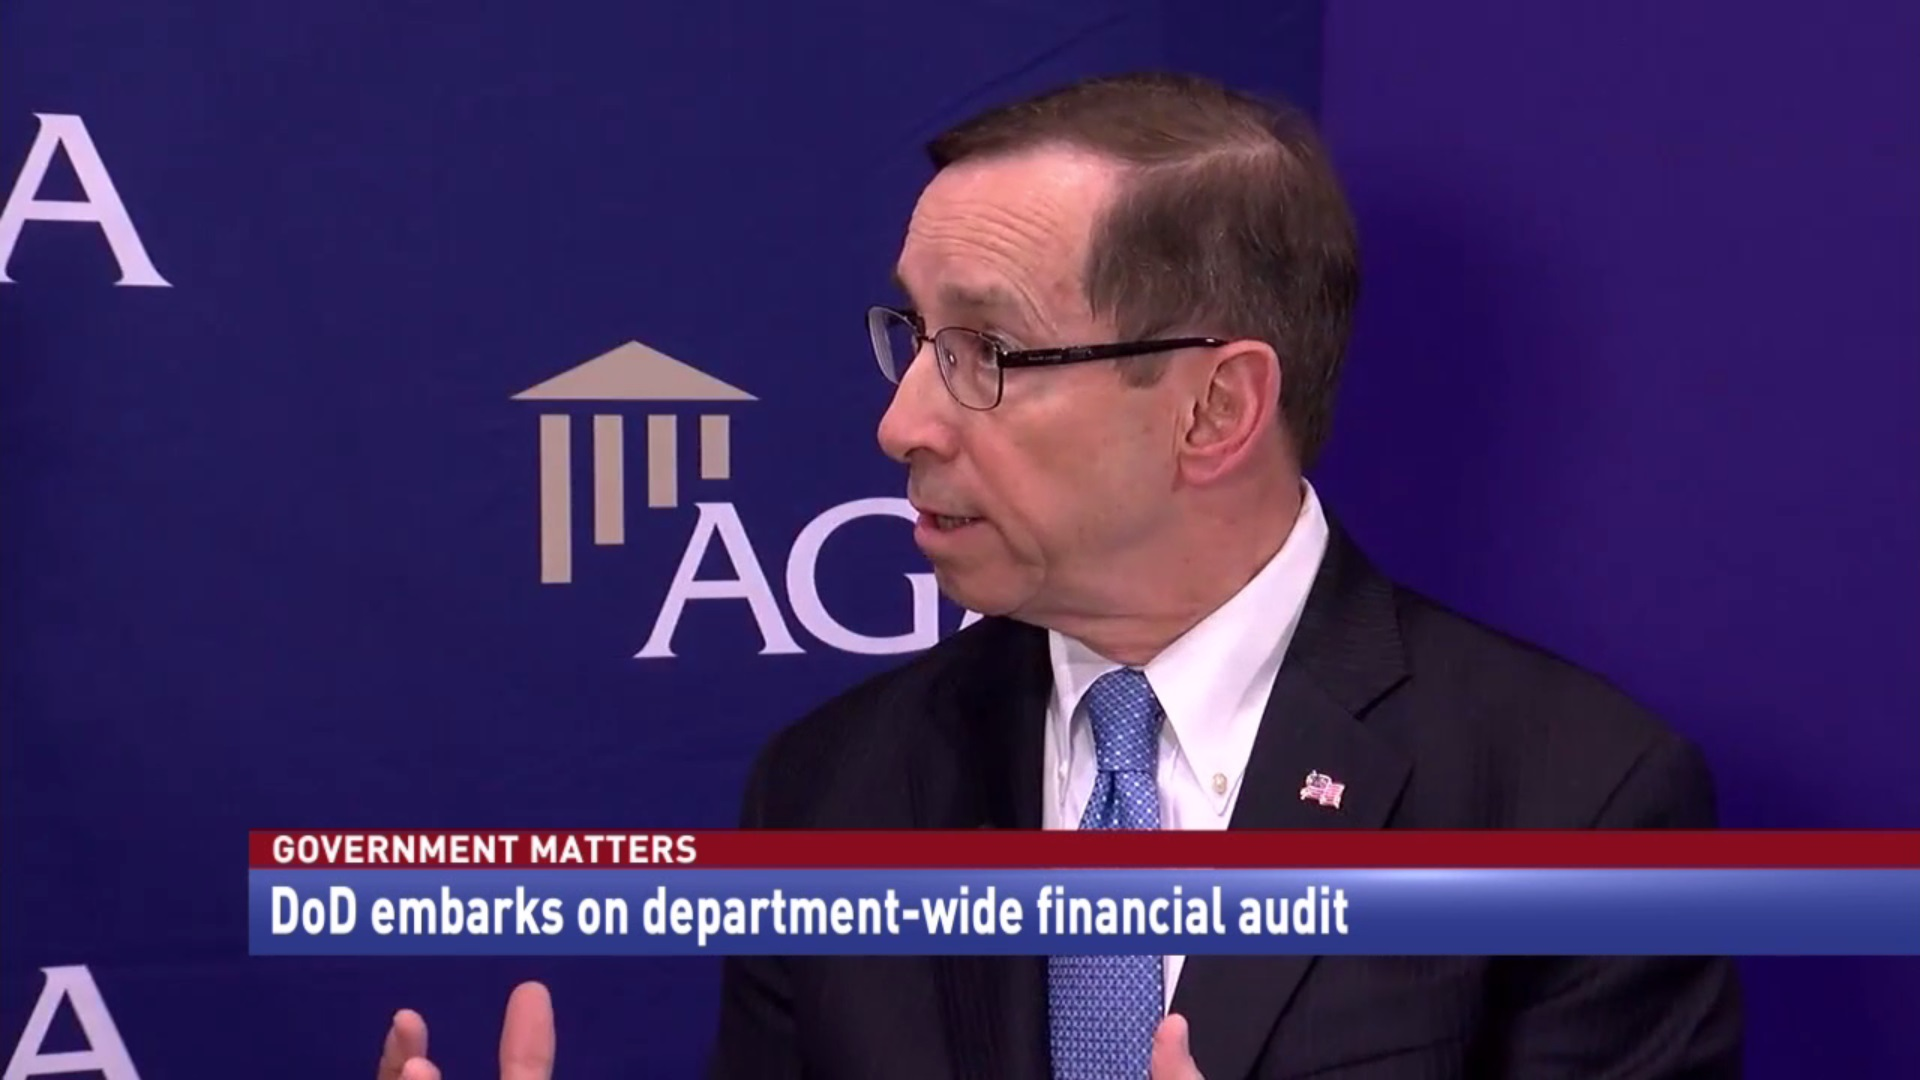 DoD embarks on department-wide financial audit